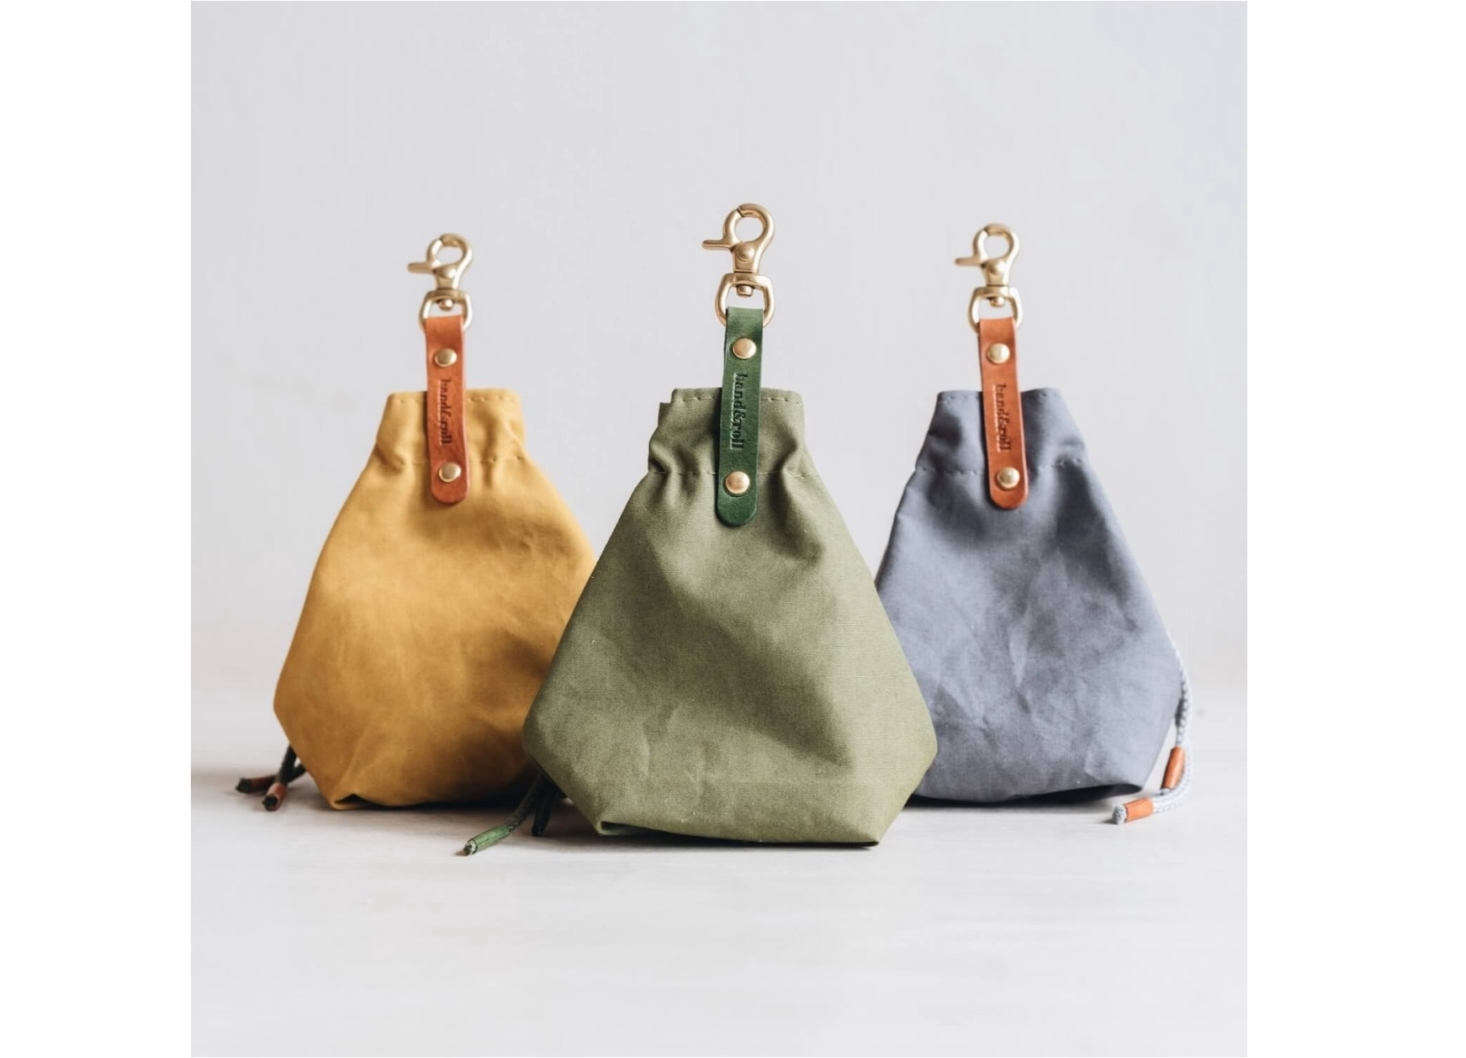 This waxed canvas Treat Bag for dogs is handmade in Berlin by Band & Roll. It holds wet and dry treats, has a cotton cord for closure, and can be clipped onto a dog leash or belt loop for easy access on walks; £35.95.